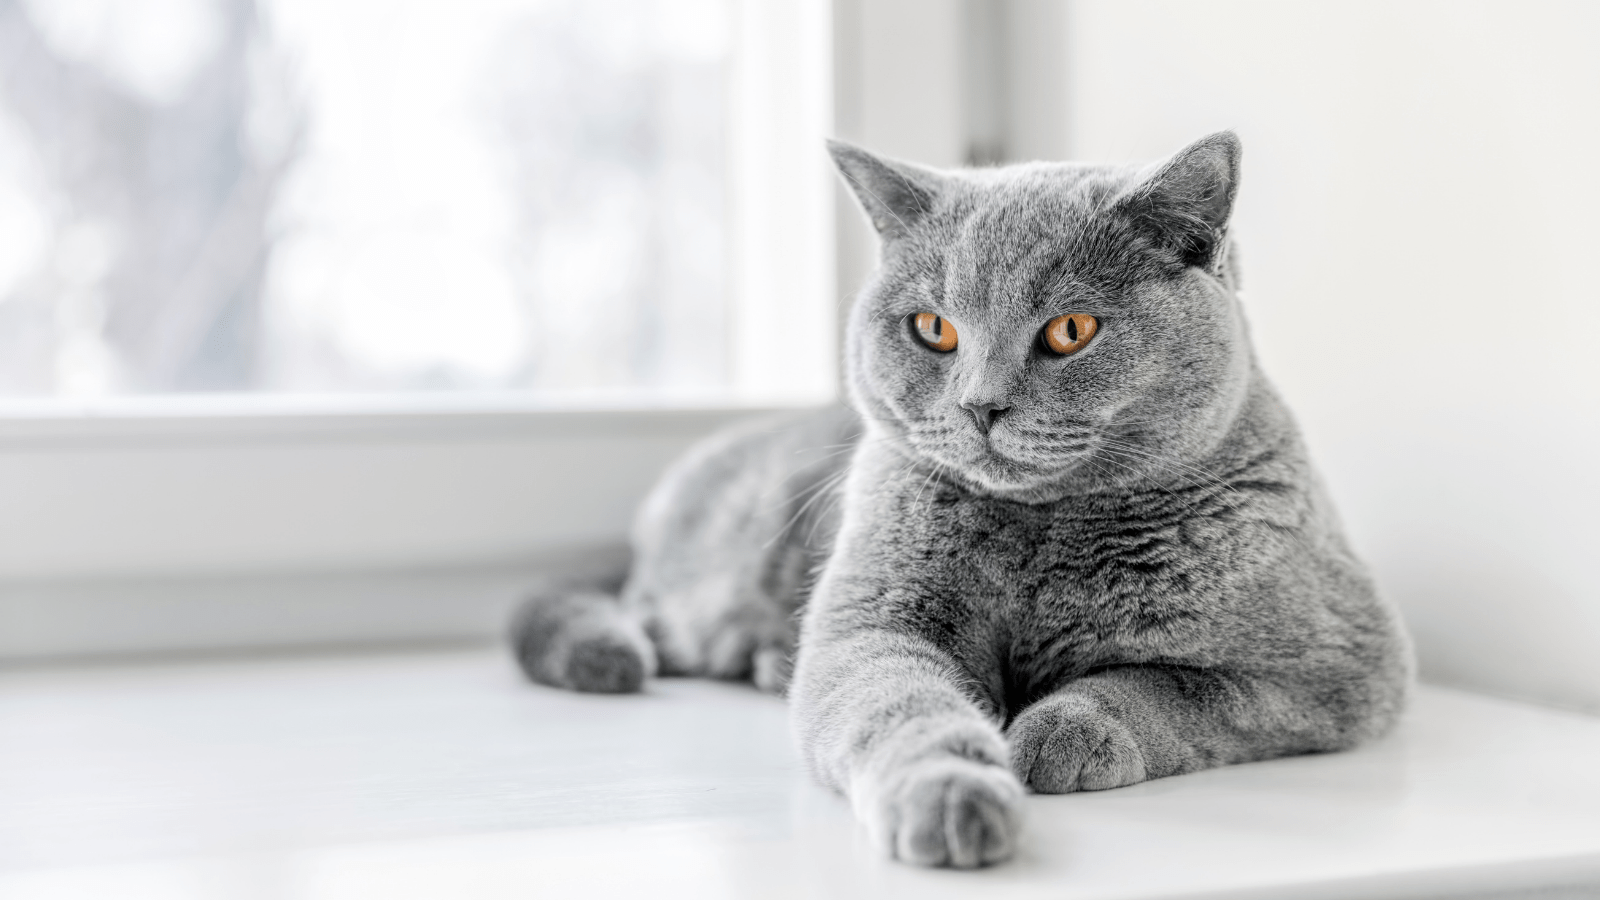 How To Train A Cat To Be Well-Behaved